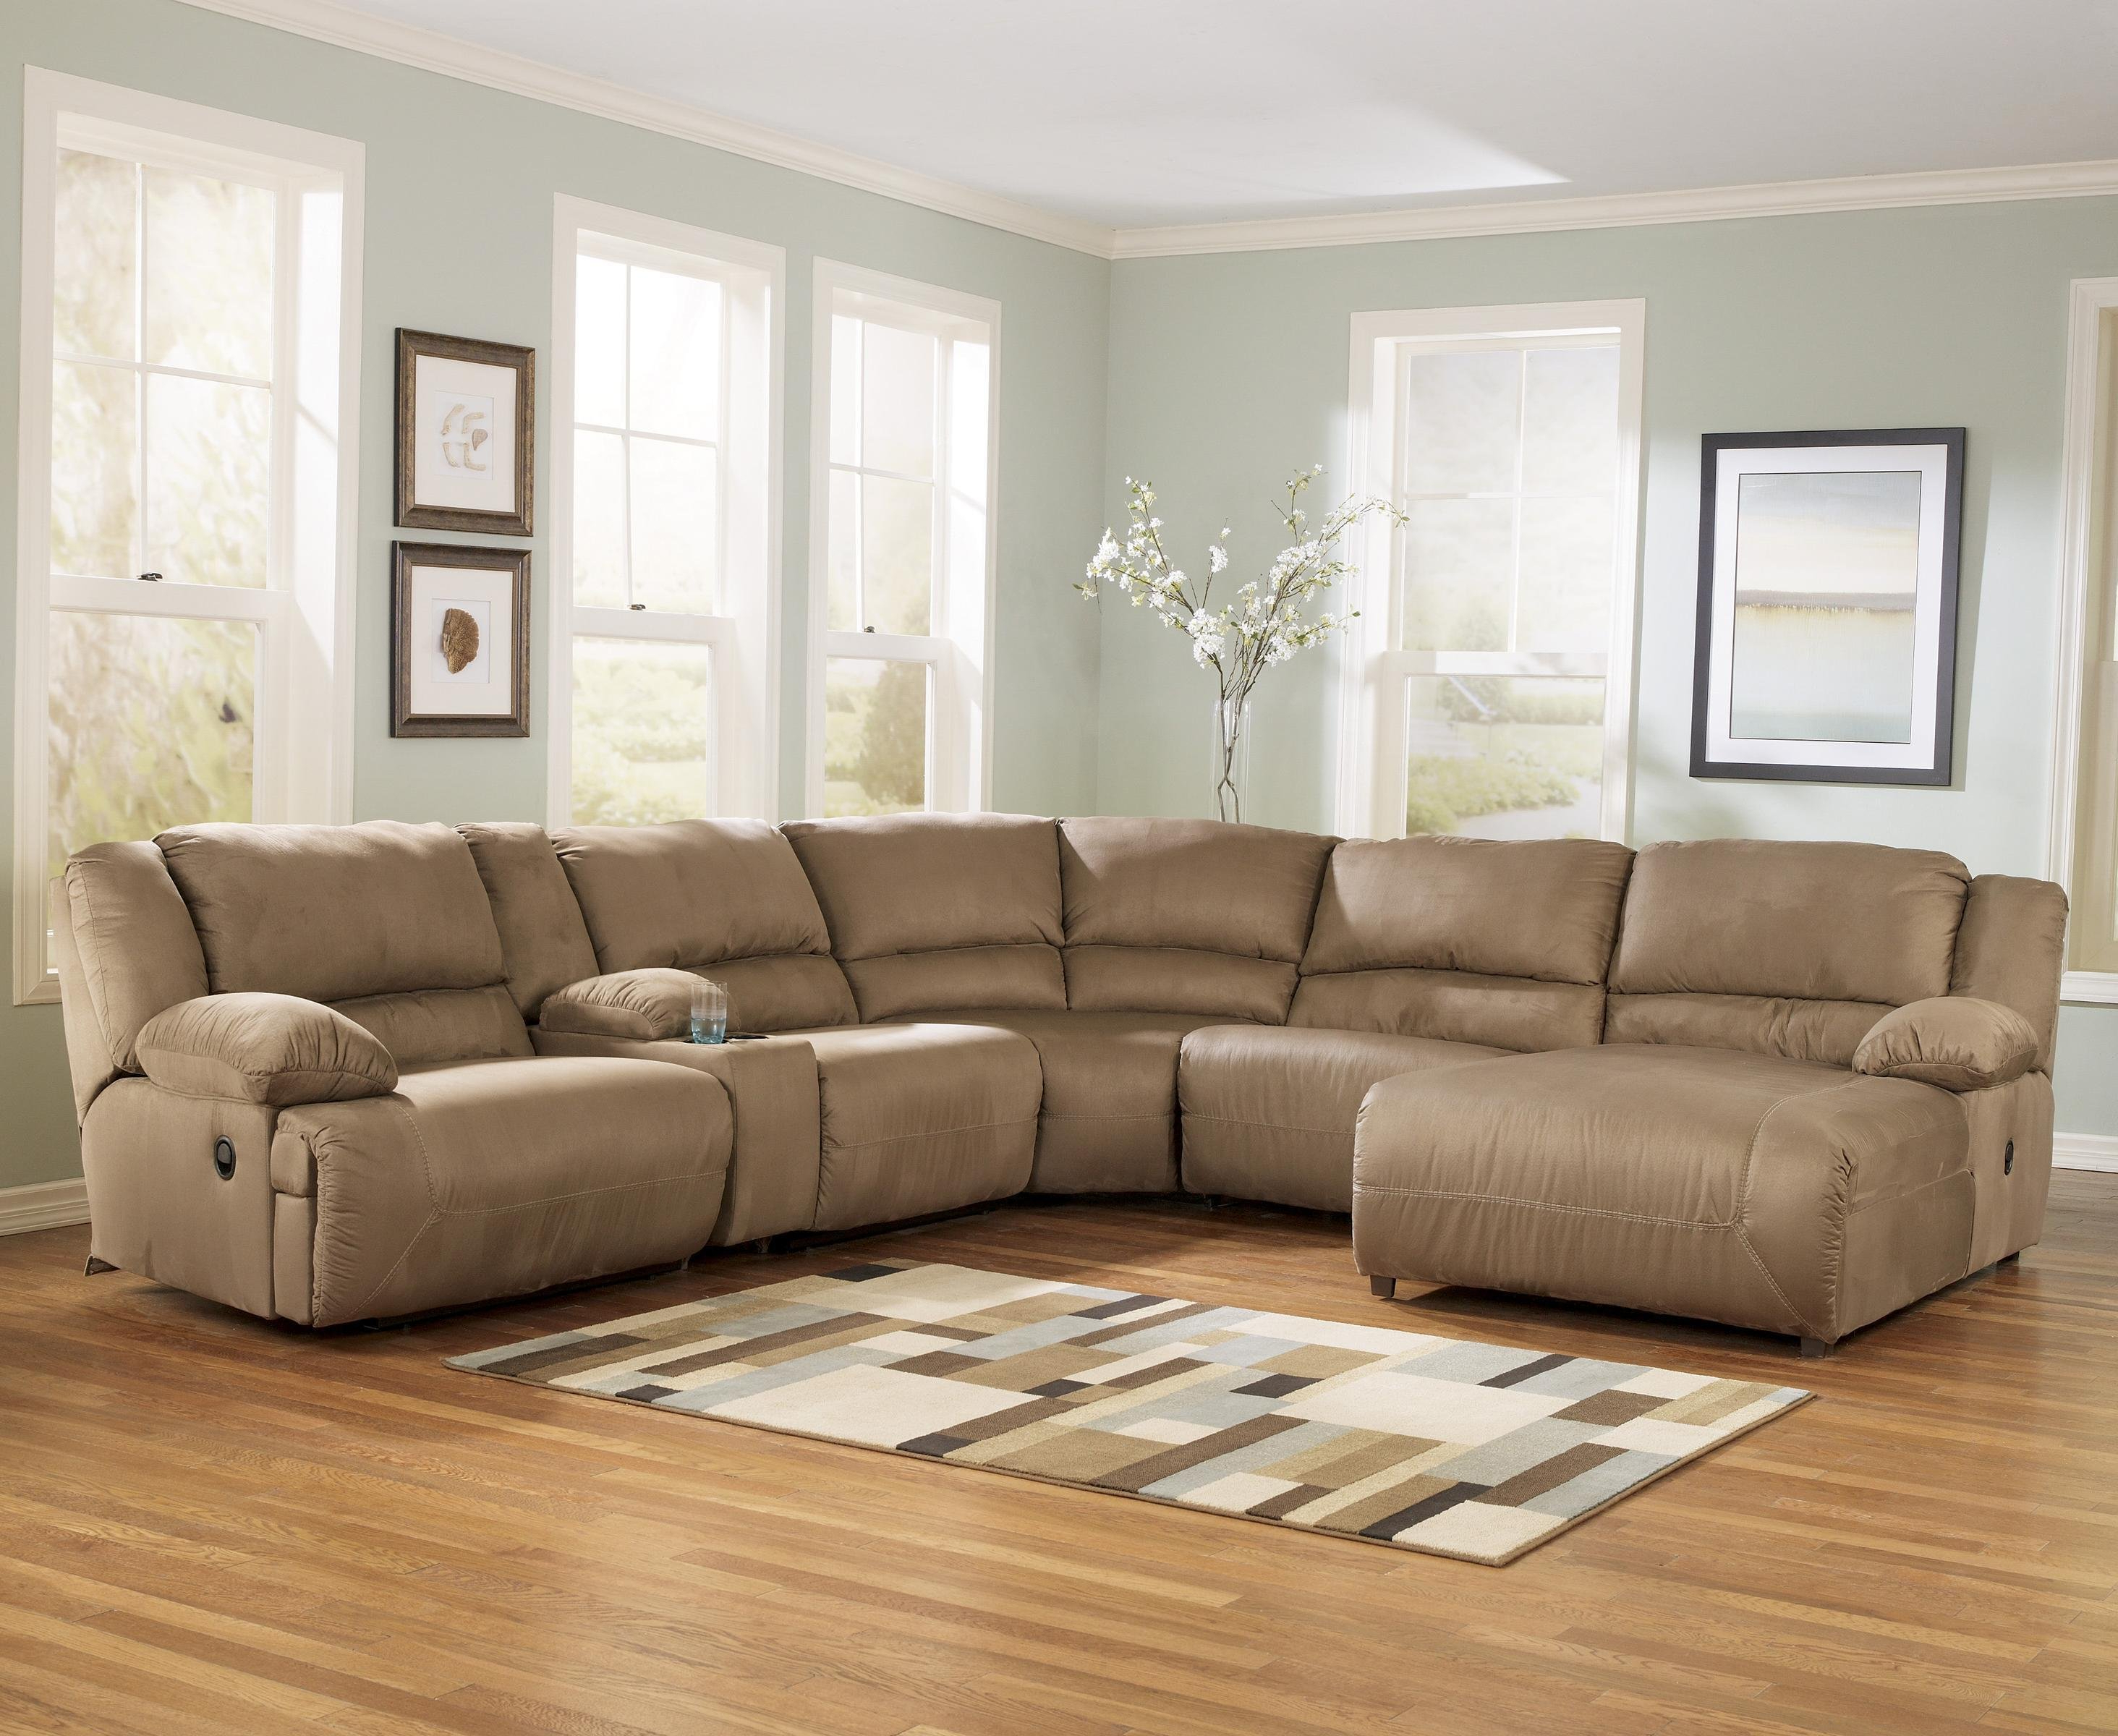 Favorite Calder Grey 6 Piece Manual Reclining Sectionals For Fabulous 25 Power Reclining Sectional Sofa Favorite (View 4 of 20)